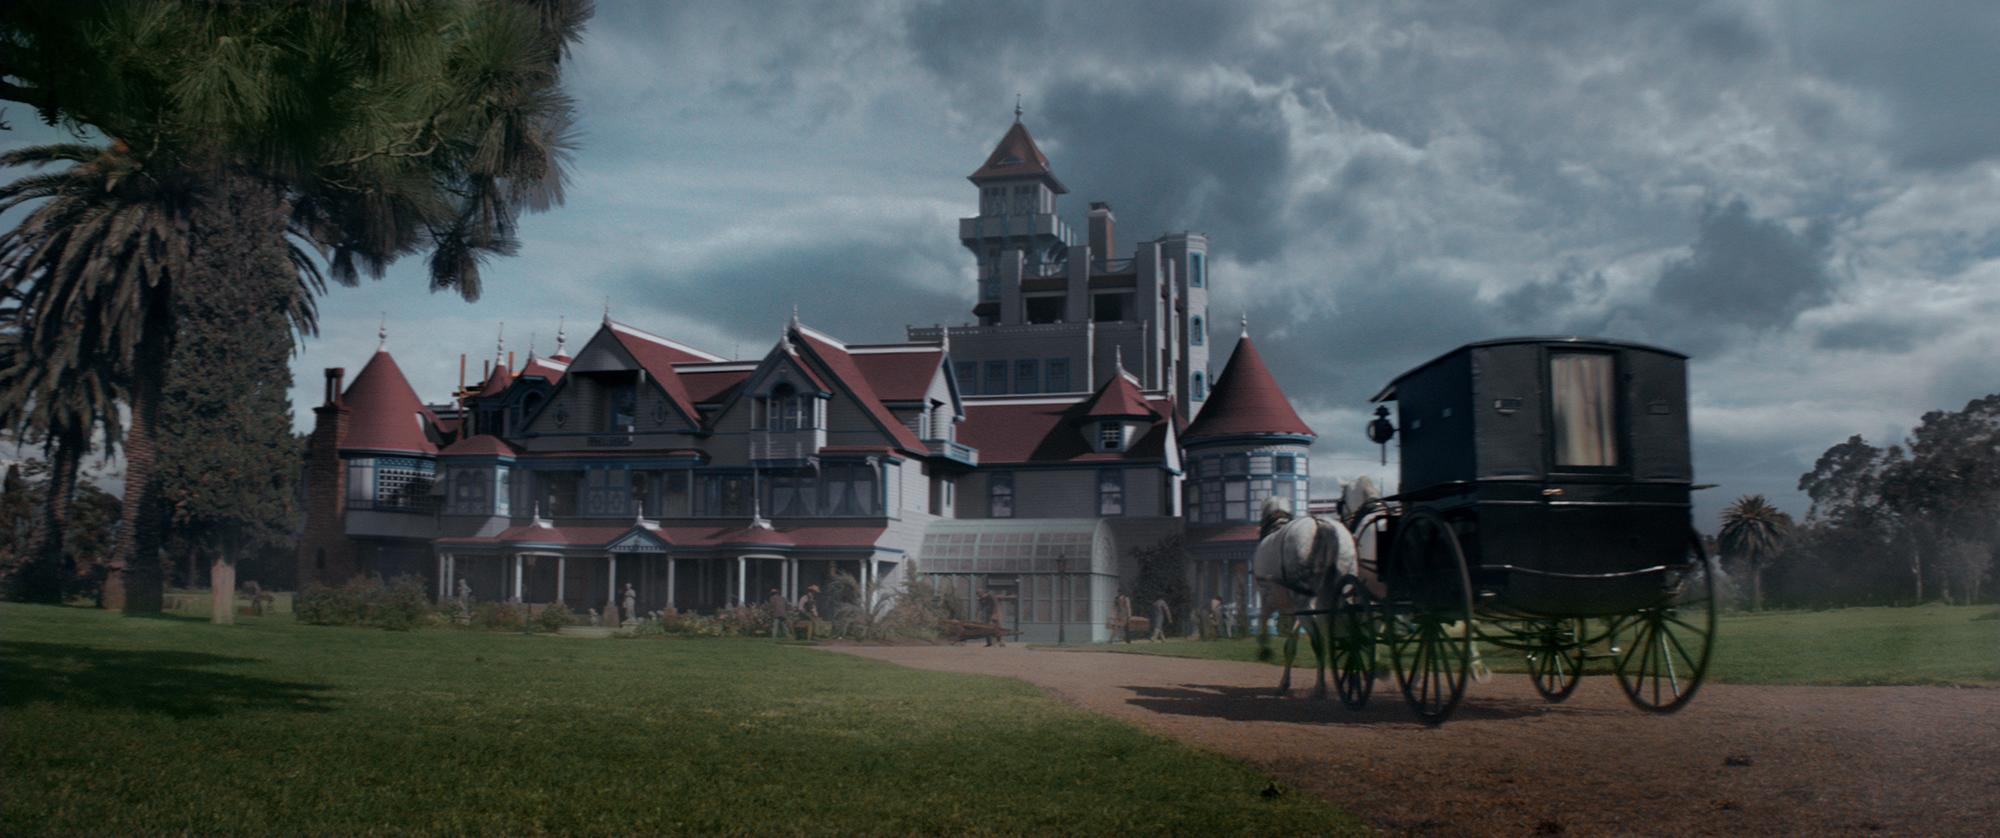 <p>The Winchester mansion in a scene from WINCHESTER to be released by CBS Films and Lionsgate. (Photo: CBS Films)</p>